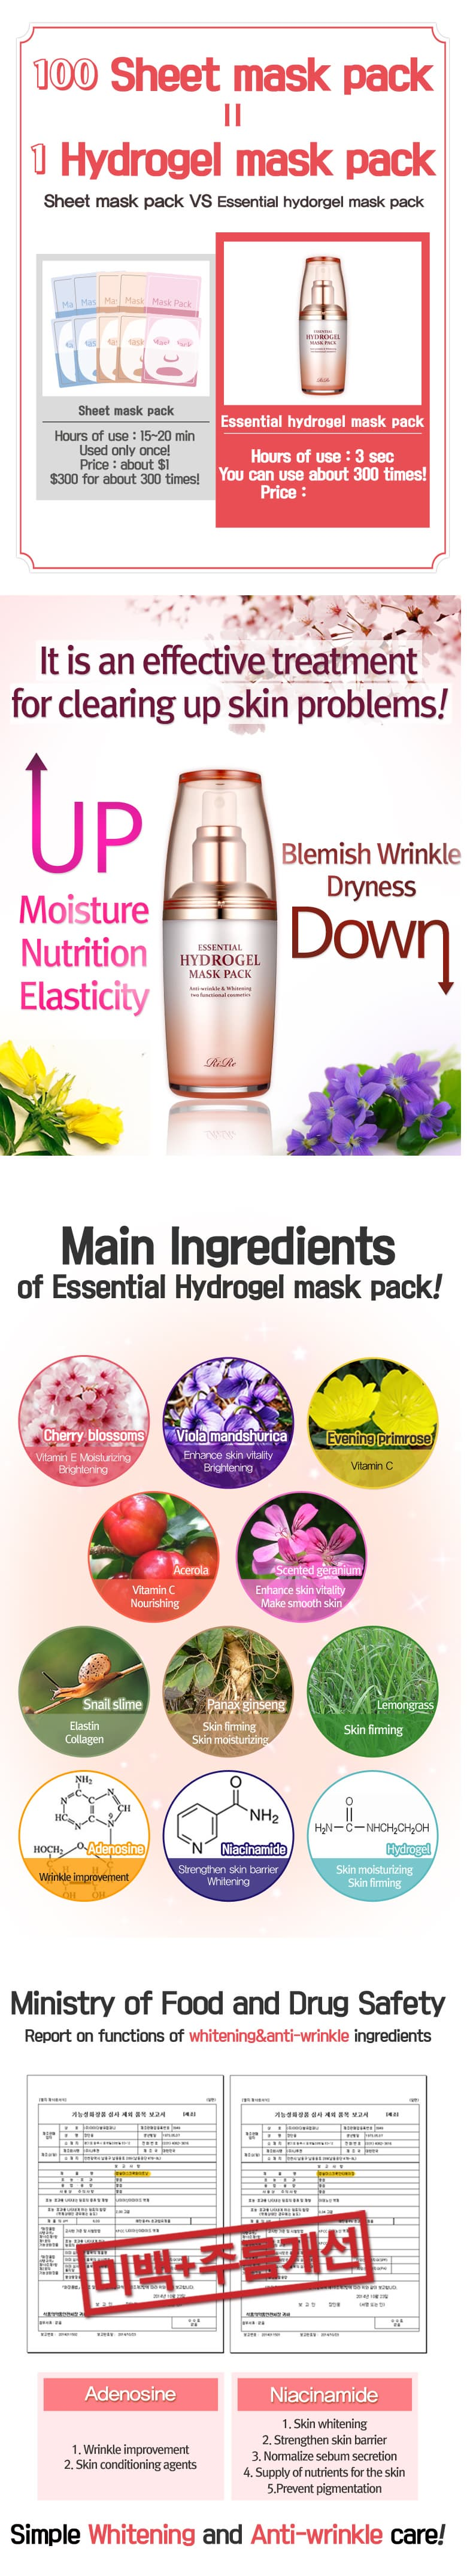 Rire Essential hydrogel mask pack